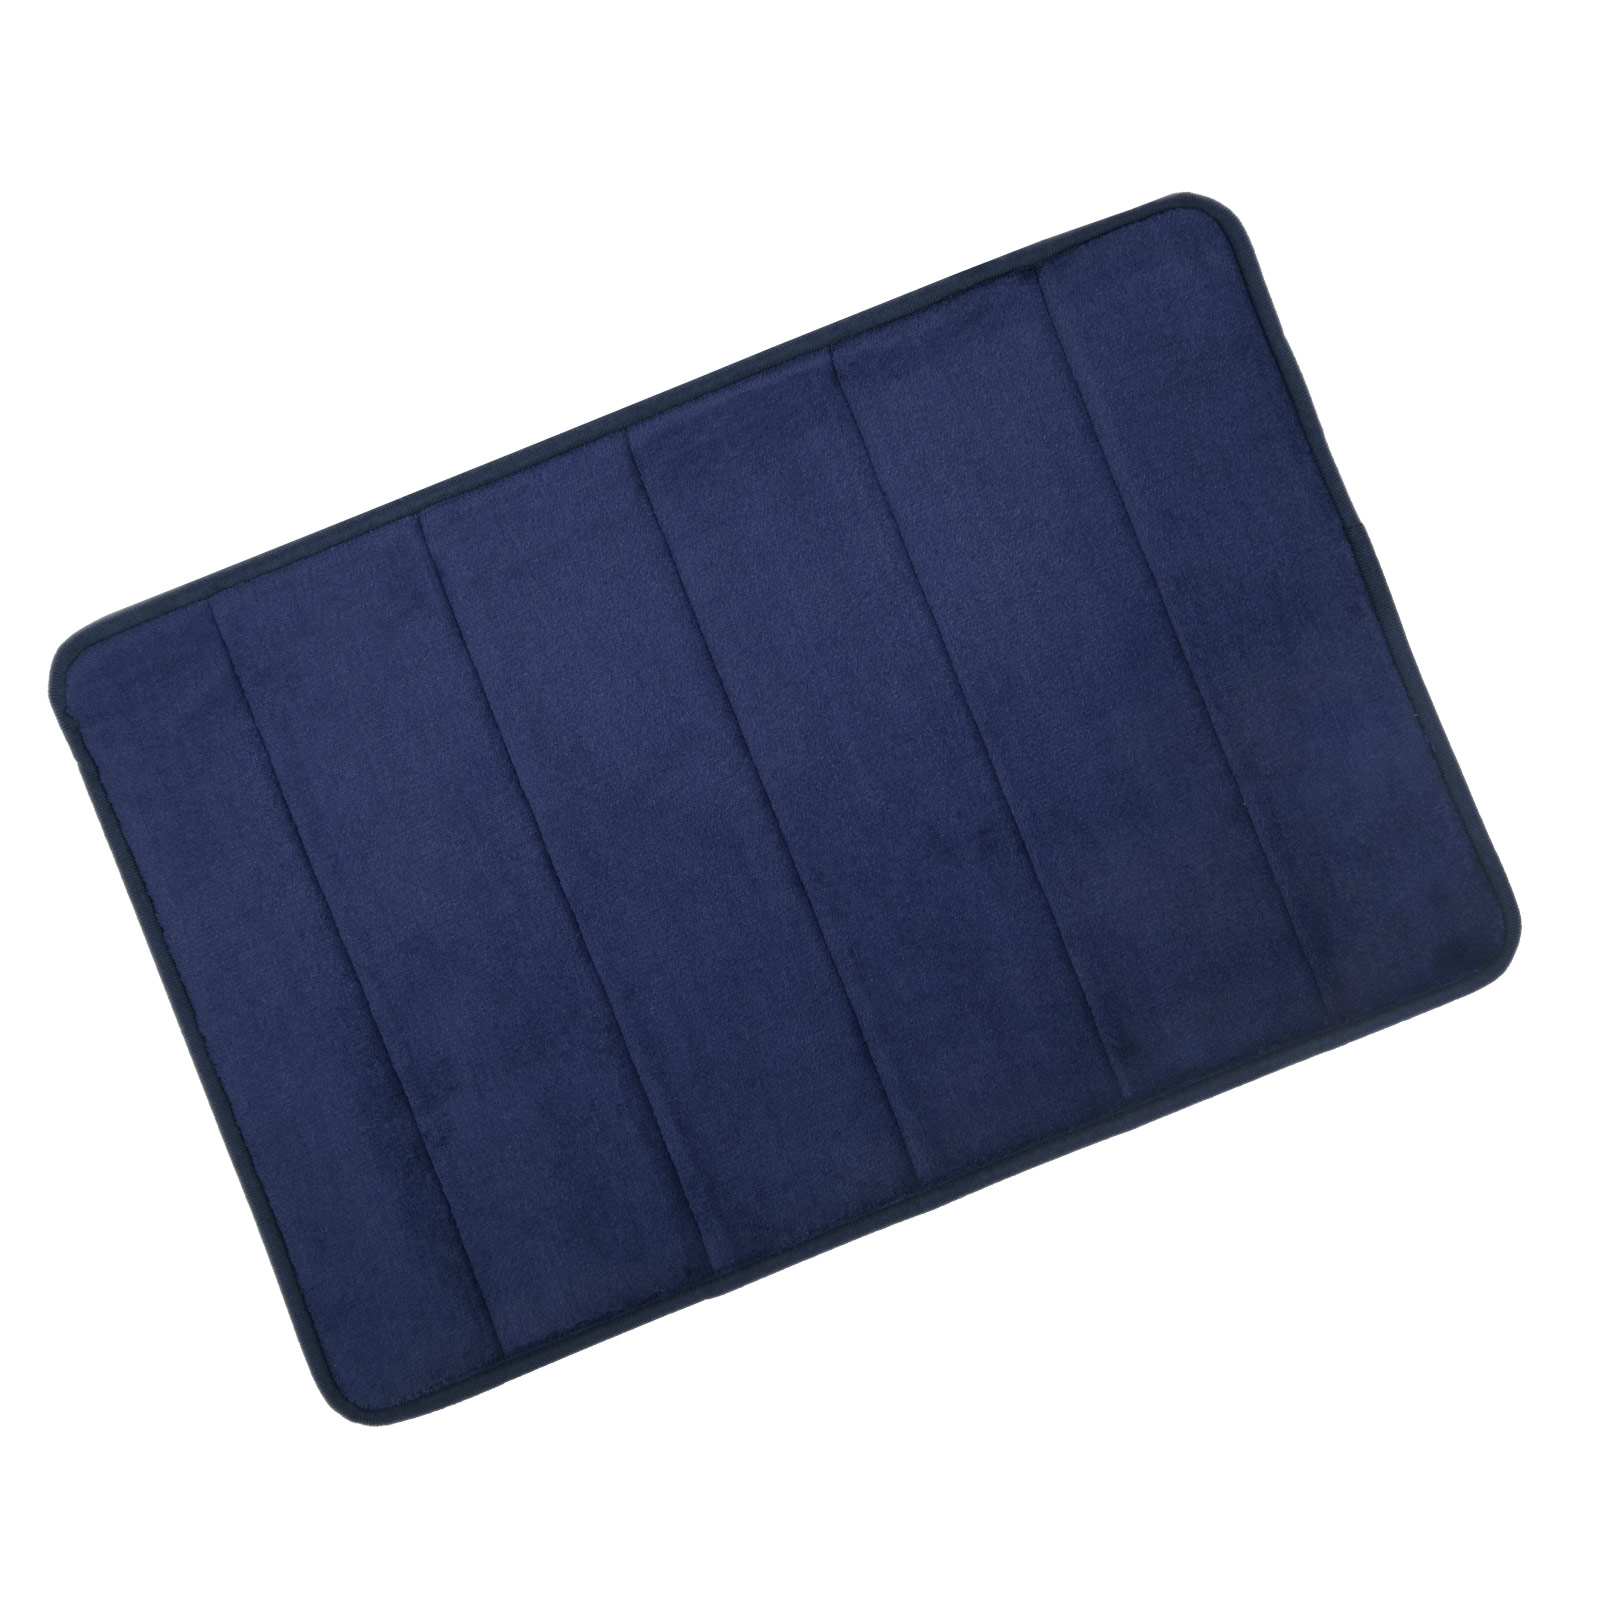 Navy Blue Memory Foam Bath Mat